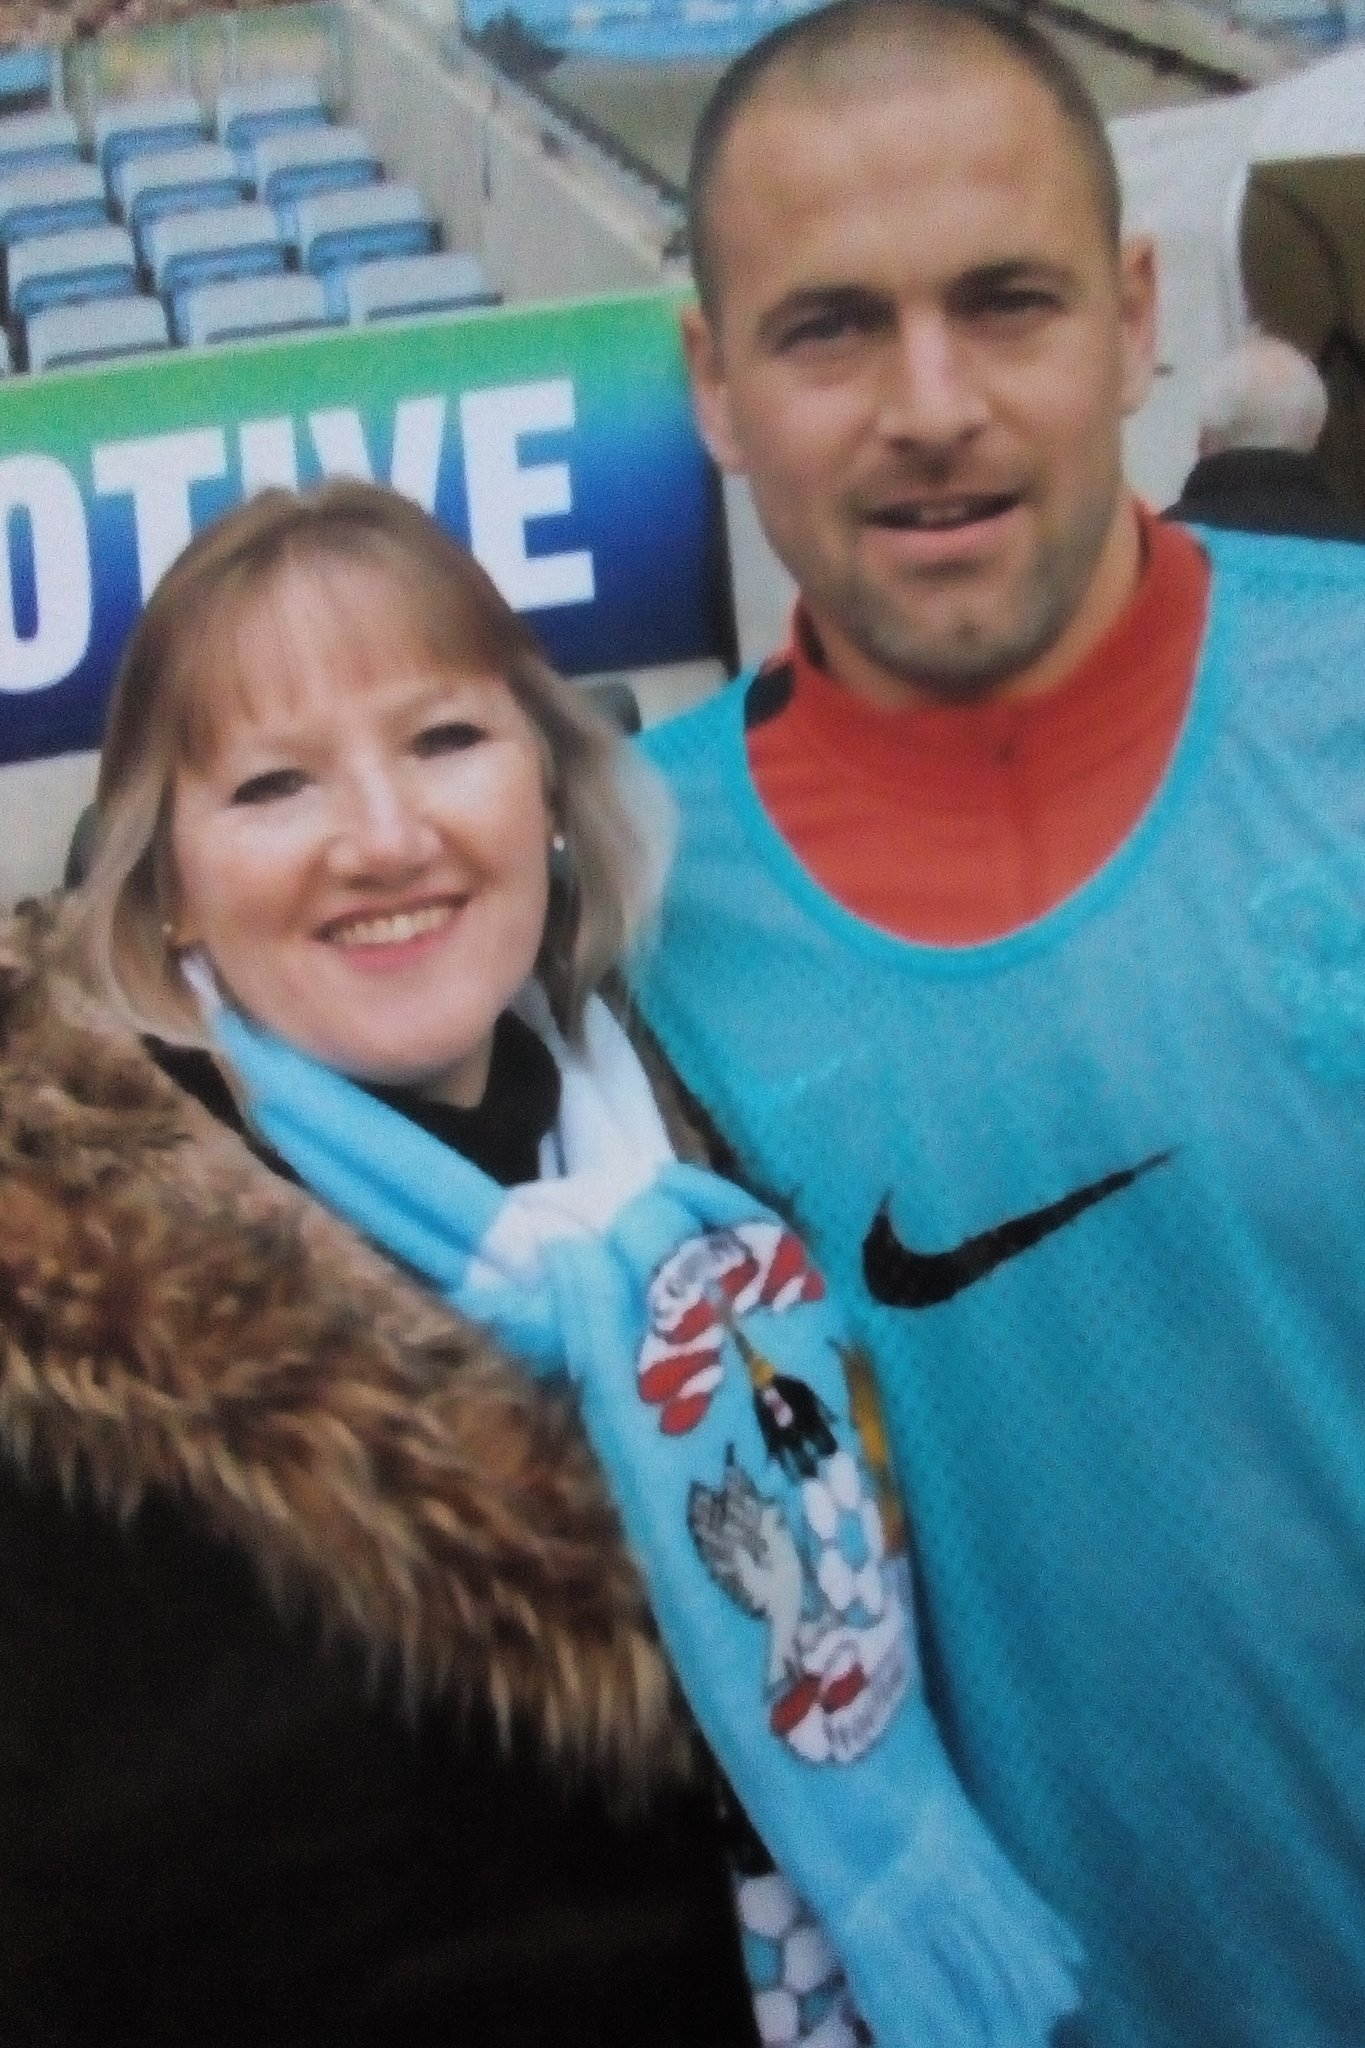 Me and hubby would like to wish former player Joe cole a very happy 37th birthday.xx